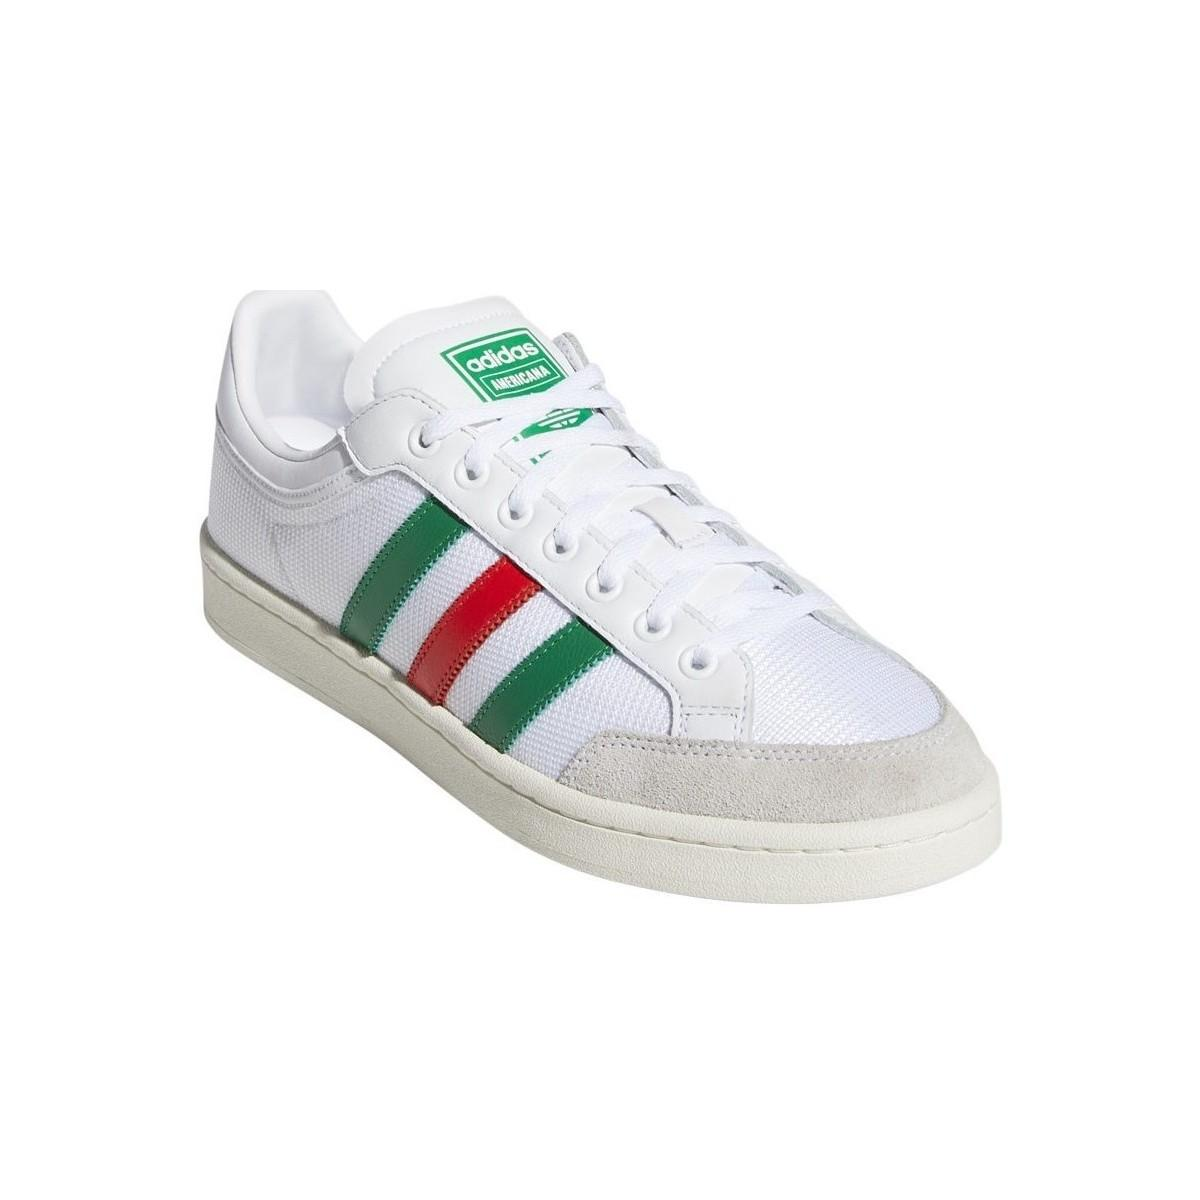 Baskets basses Americana adidas pour homme - Lyst